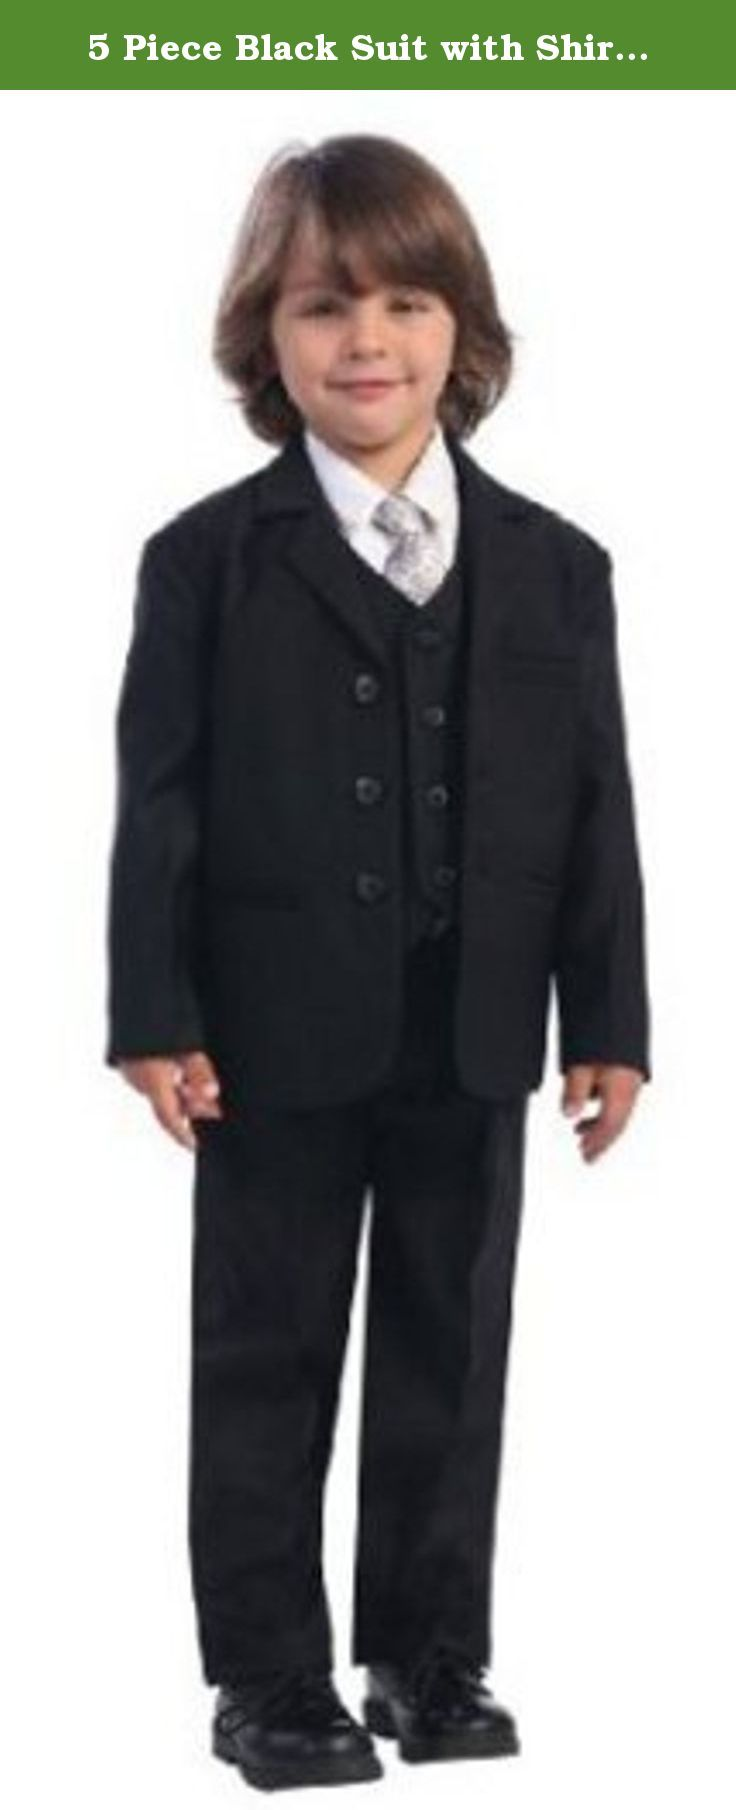 5 Piece Black Suit with Shirt, Vest, and Tie - Size 5. The 5pc set includes a jacket with matching vest and pants, a white shirt and coordinating tie. Perfect for any special occasion. Infant, Toddler, Boy's Sizes (M-14). (Suit: 100% Polyester / Shirt: 65% Polyester-35% Cotton). Made in the USA. Infant Sizes: M (6-9 Months), L (9-12 Months), XL (12-18 Months), Toddler Sizes: 2T, 3T, 4T, Boys Sizes: 5, 6, 7, 8, 10, 12, 14. CHEST IS MEASURED ONE INCH BELOW THE UNDERARM. Please allow 3-5…